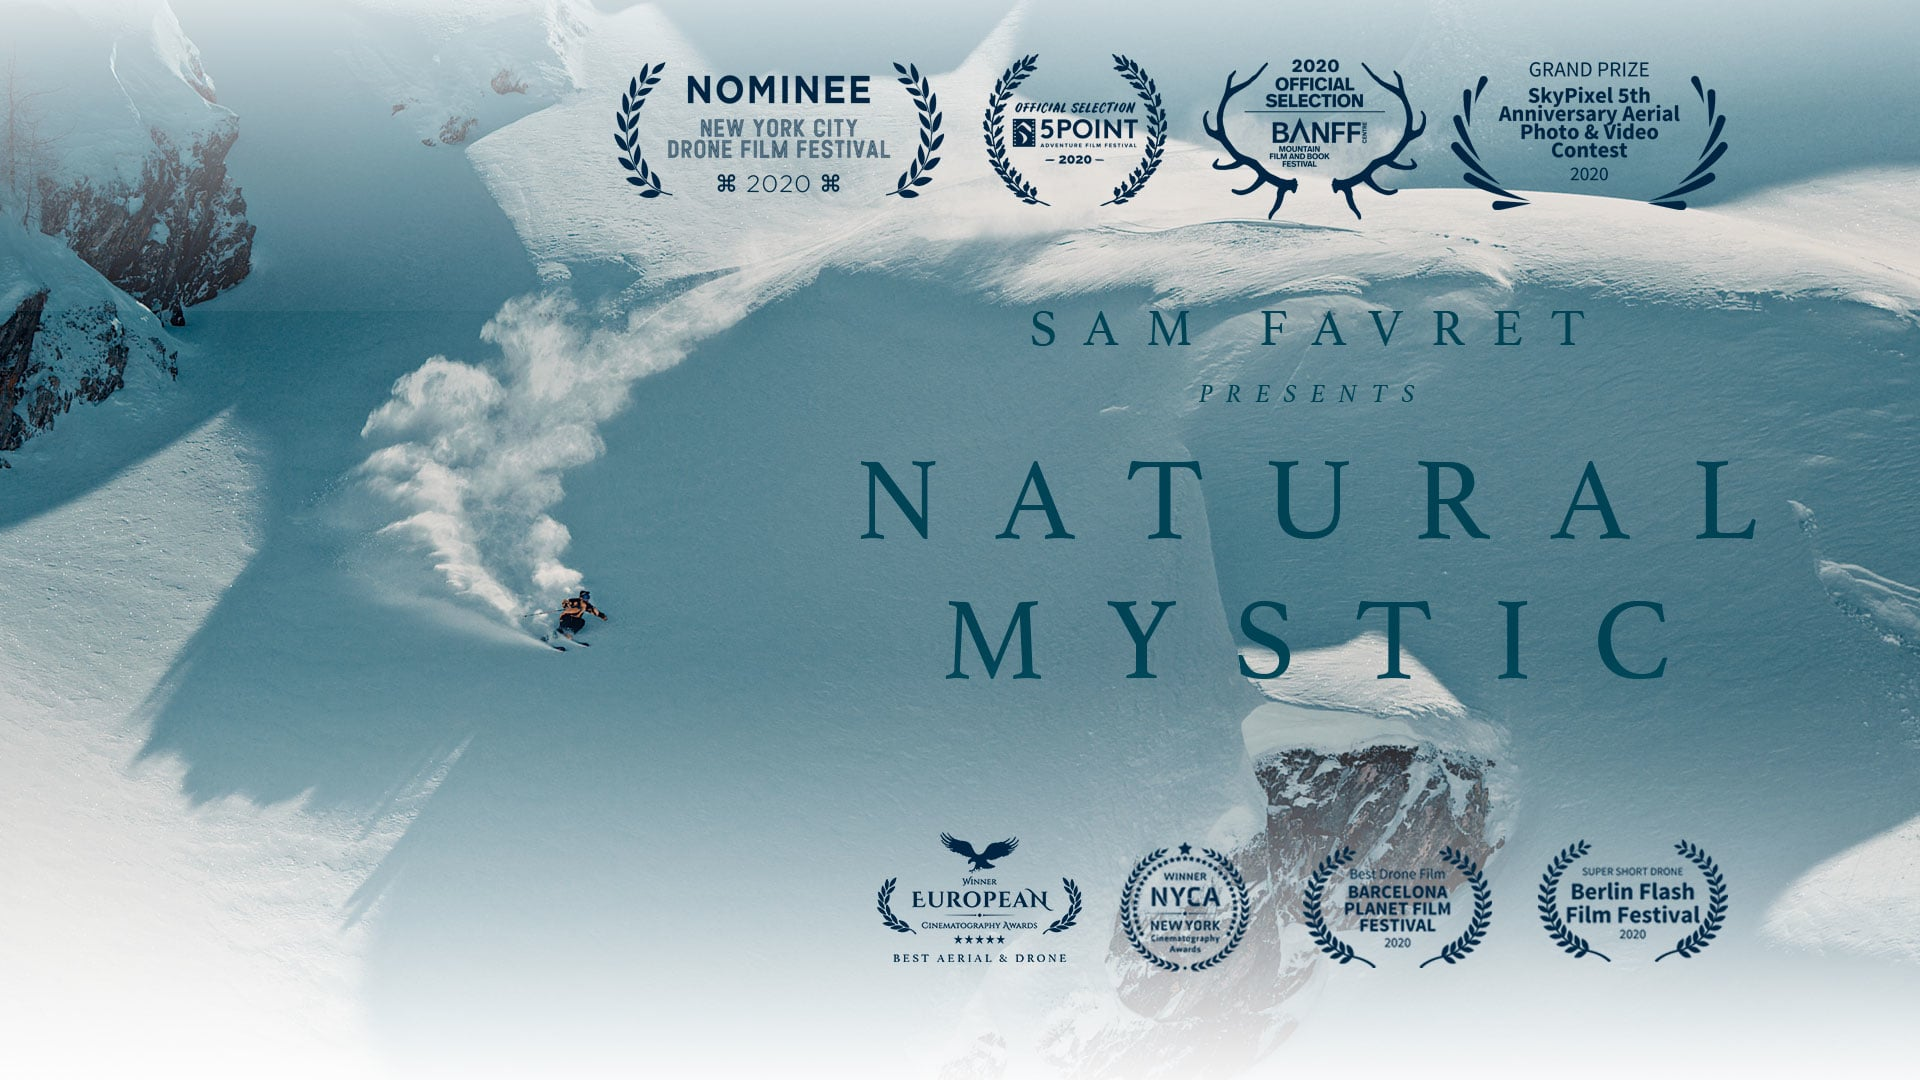 NATURAL MYSTIC BY SAM FAVRET - DRONE PROJECT